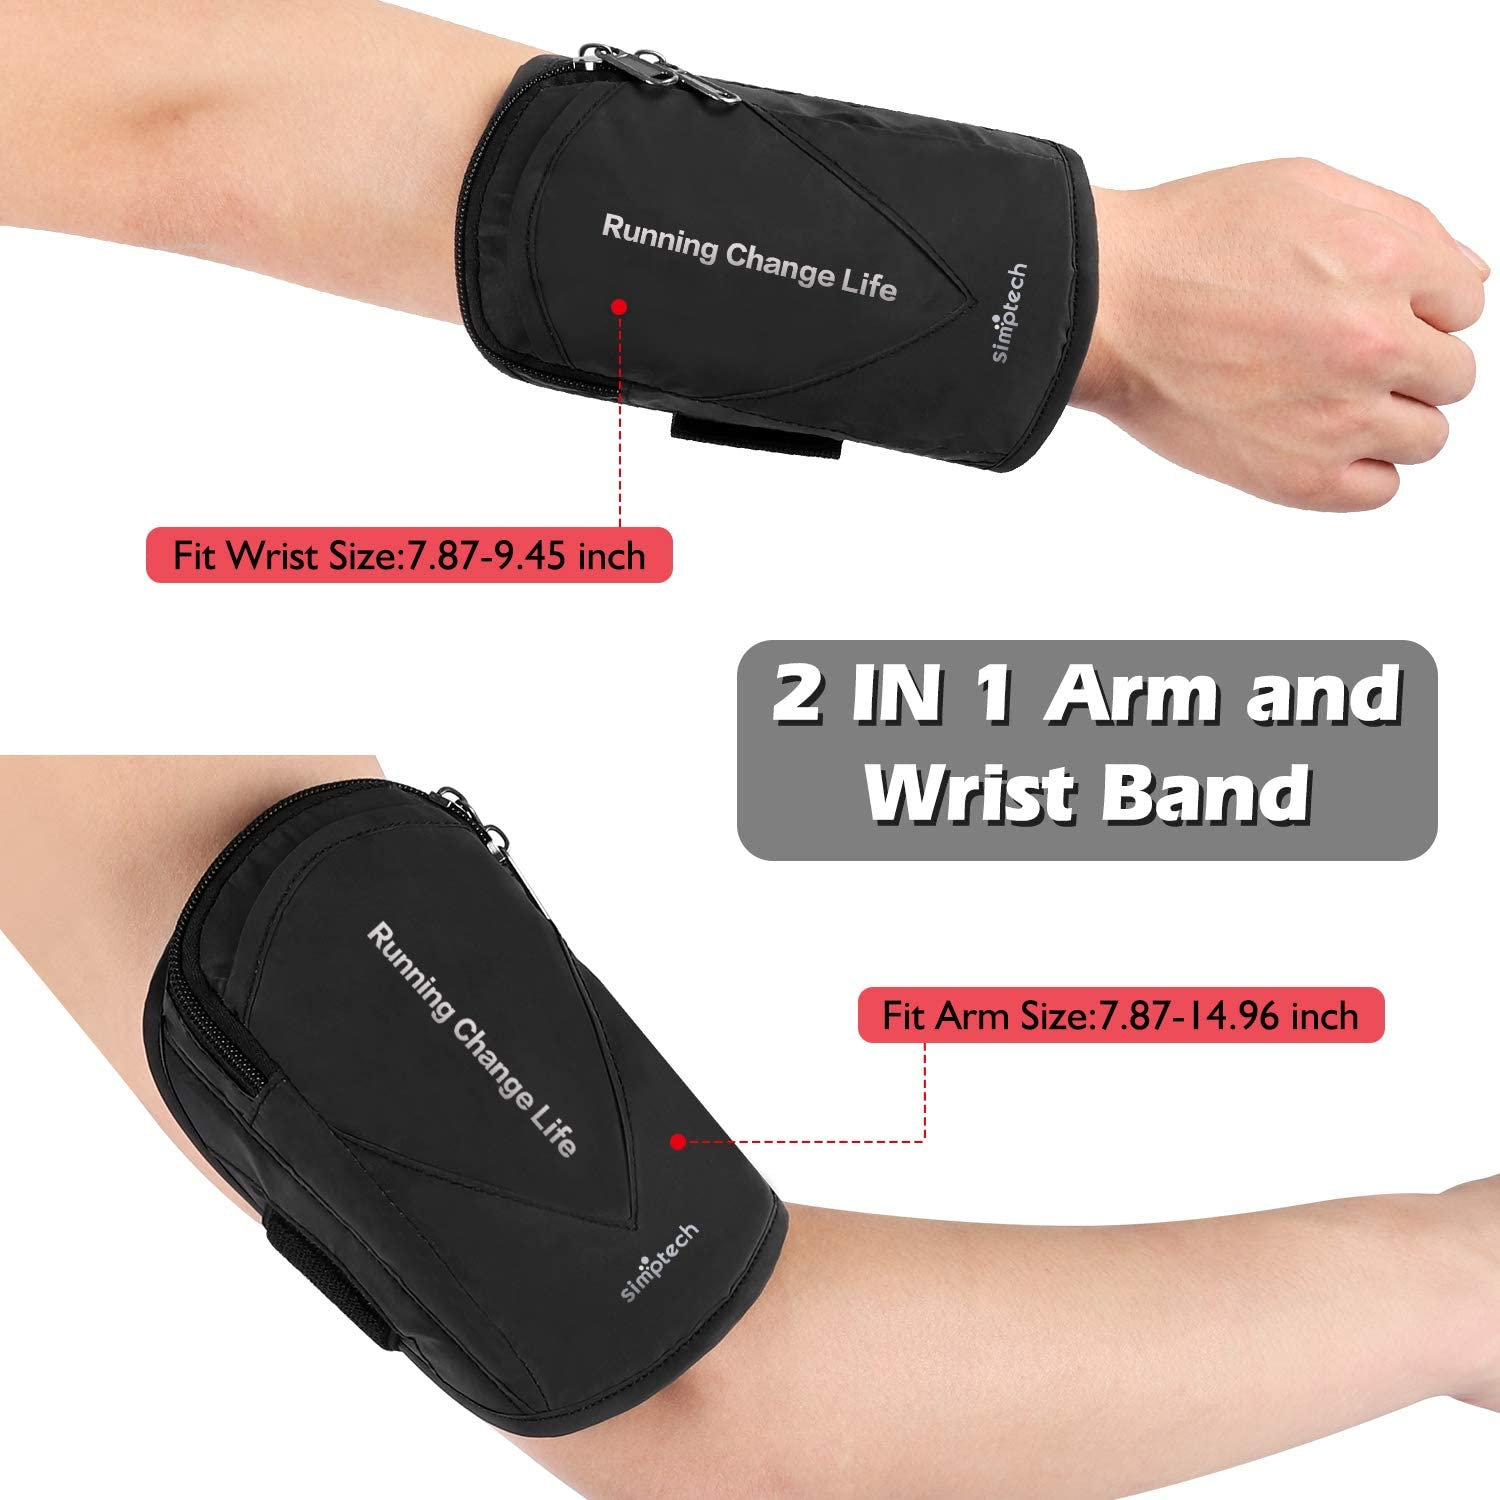 Galaxy S10//S9//S8 Plus and Note10//9//8 simptech Running Phone Armband Sweatproof Workout Phone Holder for iPhone 11 Pro Max//Xr//Xs Max//X//8//7 Plus